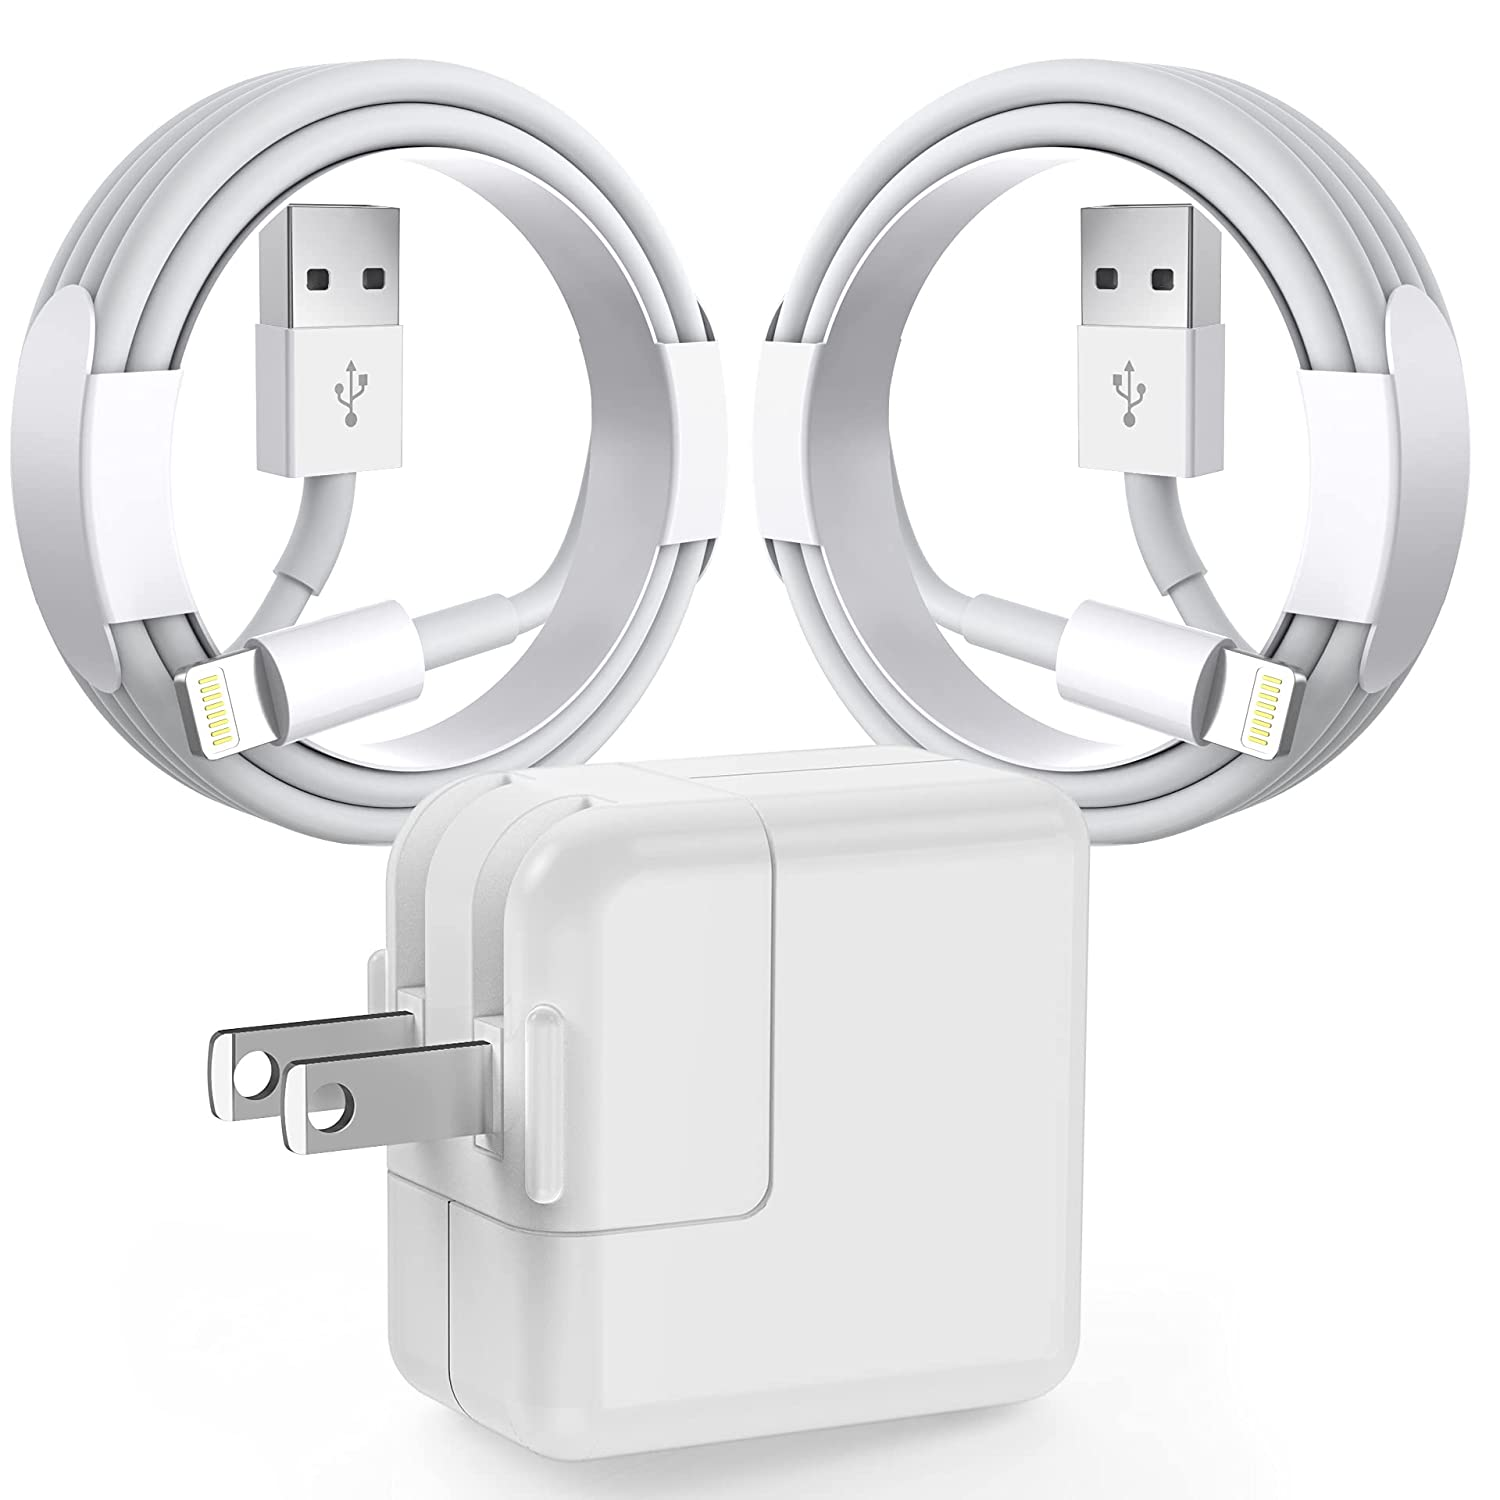 iPad Charger iPhone Charger [Apple MFi Certified] 12W Fast Charging USB Wall Charger Foldable Portable Travel Plug with 2 Pack 6FT Lightning Cable Cord Compatible with iPhone, iPad, Airpods and More